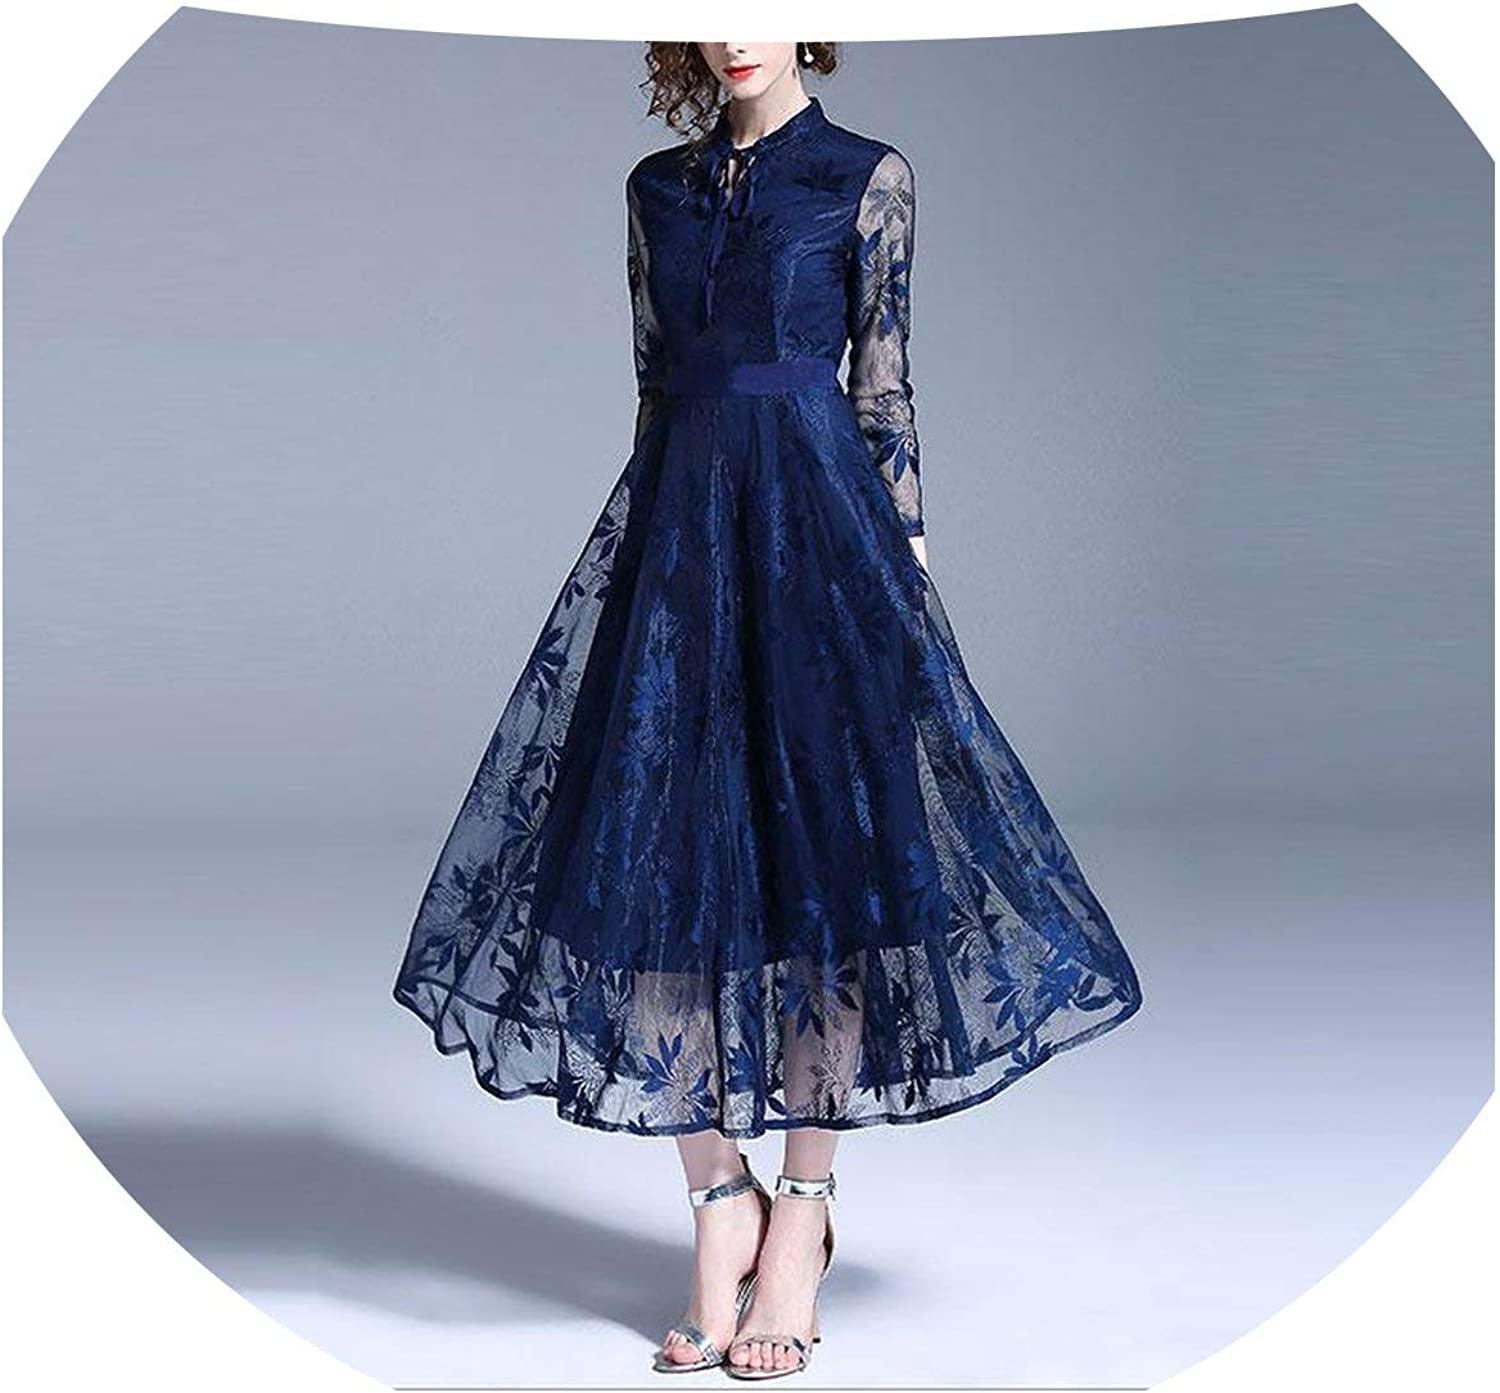 MayRainbowstore Luxury Lace Evening Party Dress Autumn Fashion England Style Big Swing Aline Women Long Dresses